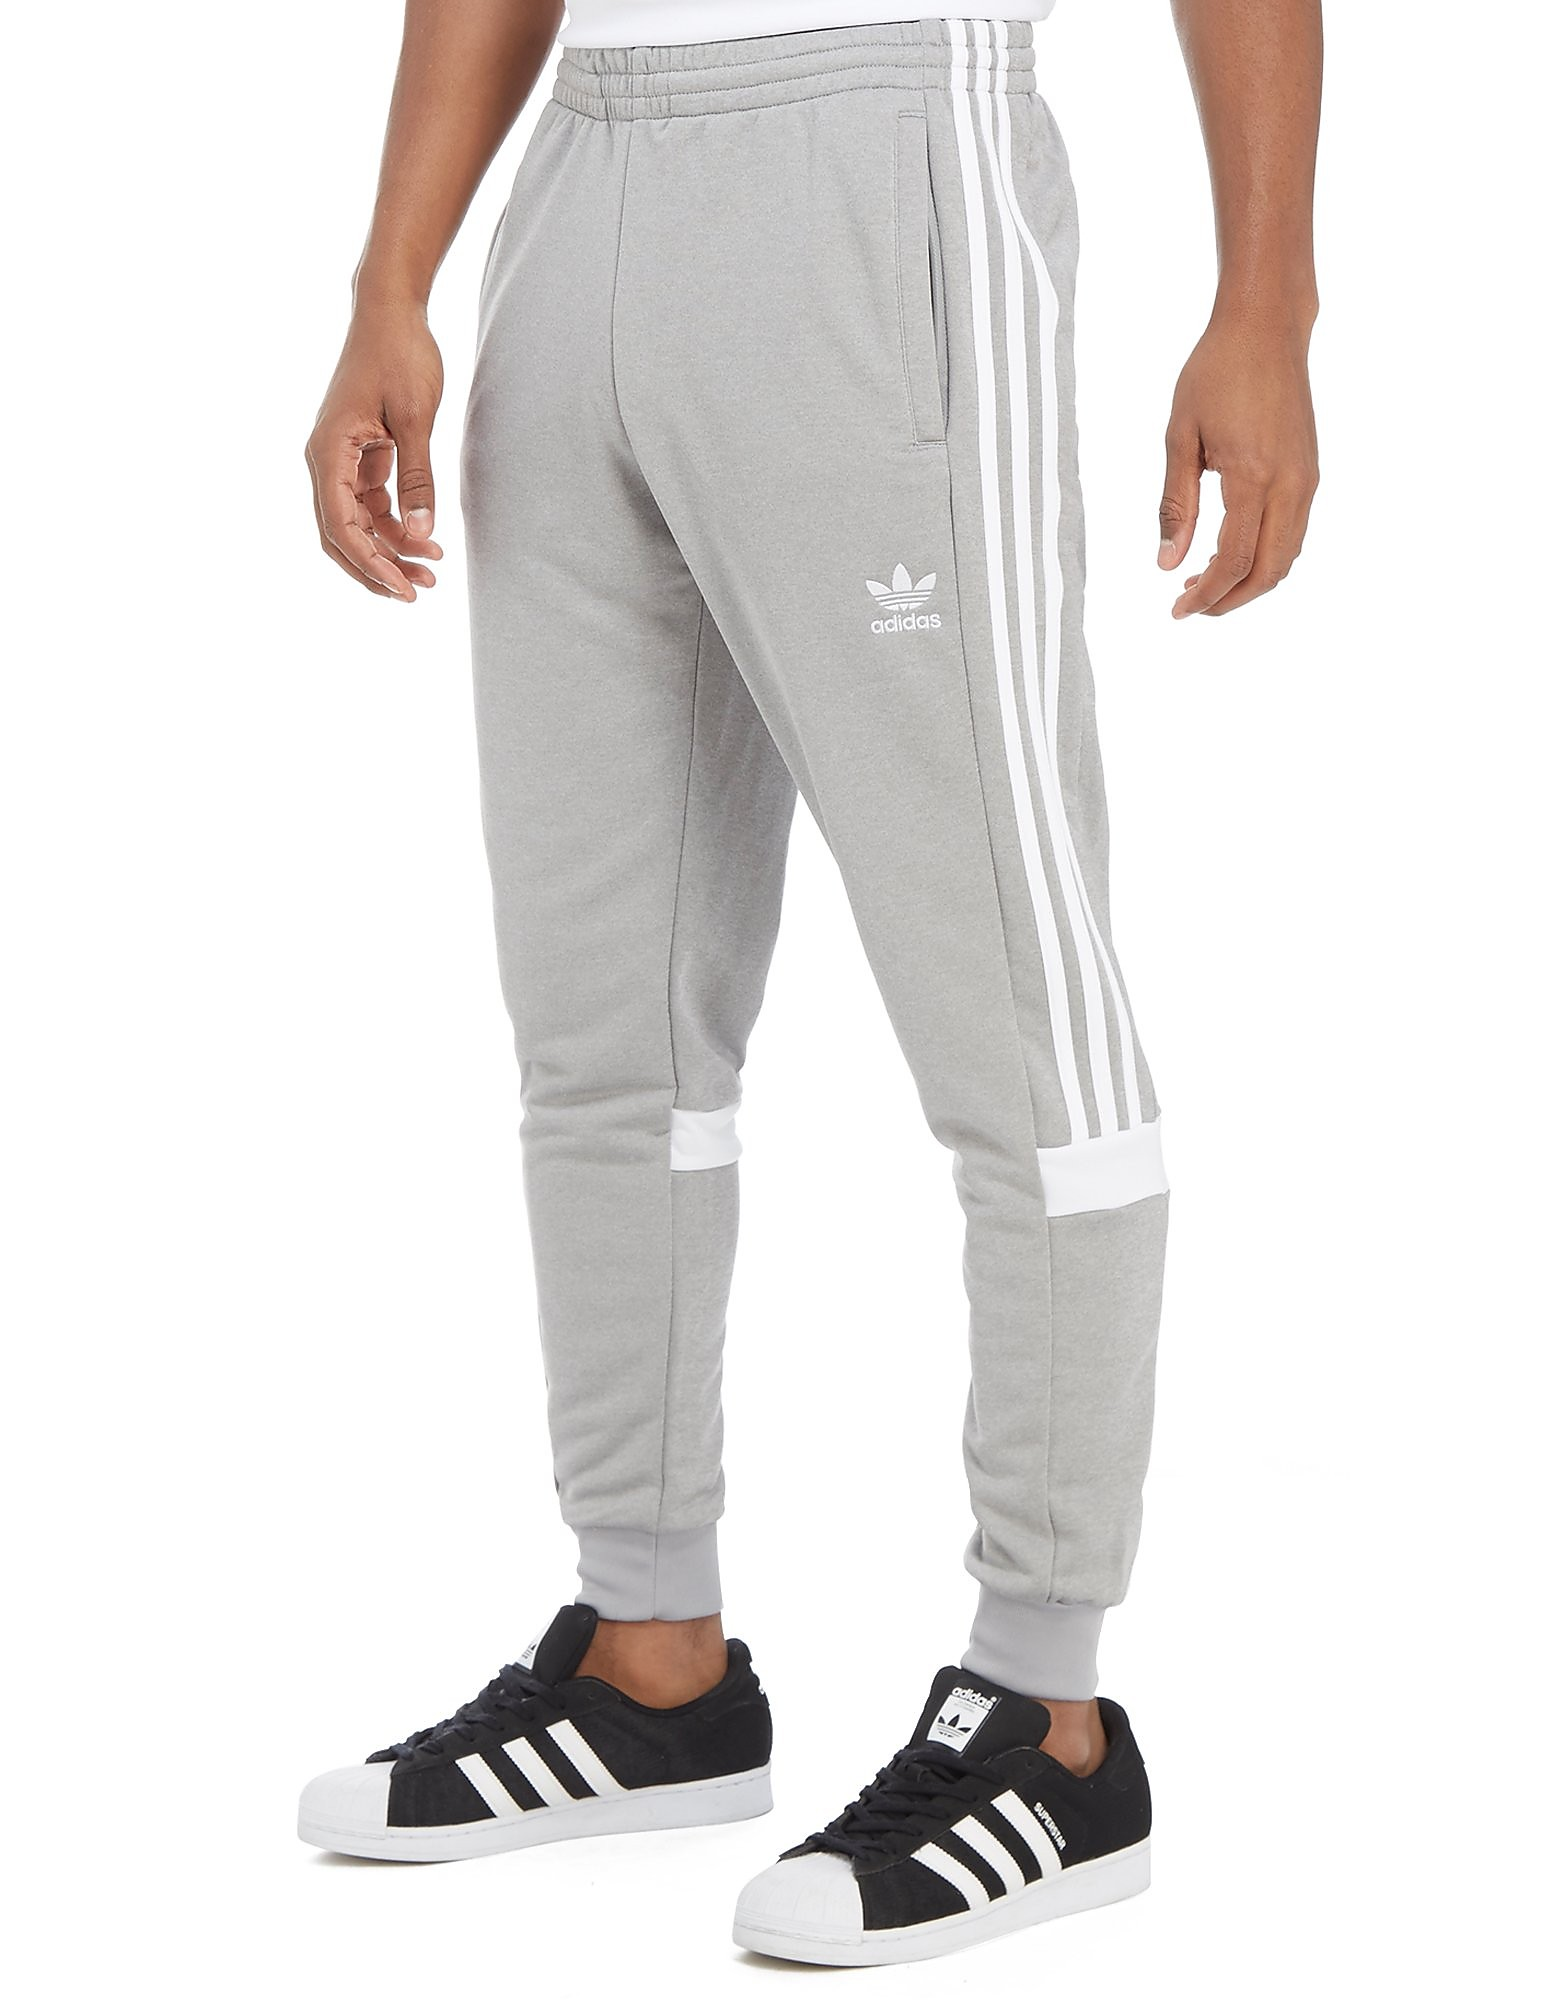 adidas Originals Superstar Colourblock Pants